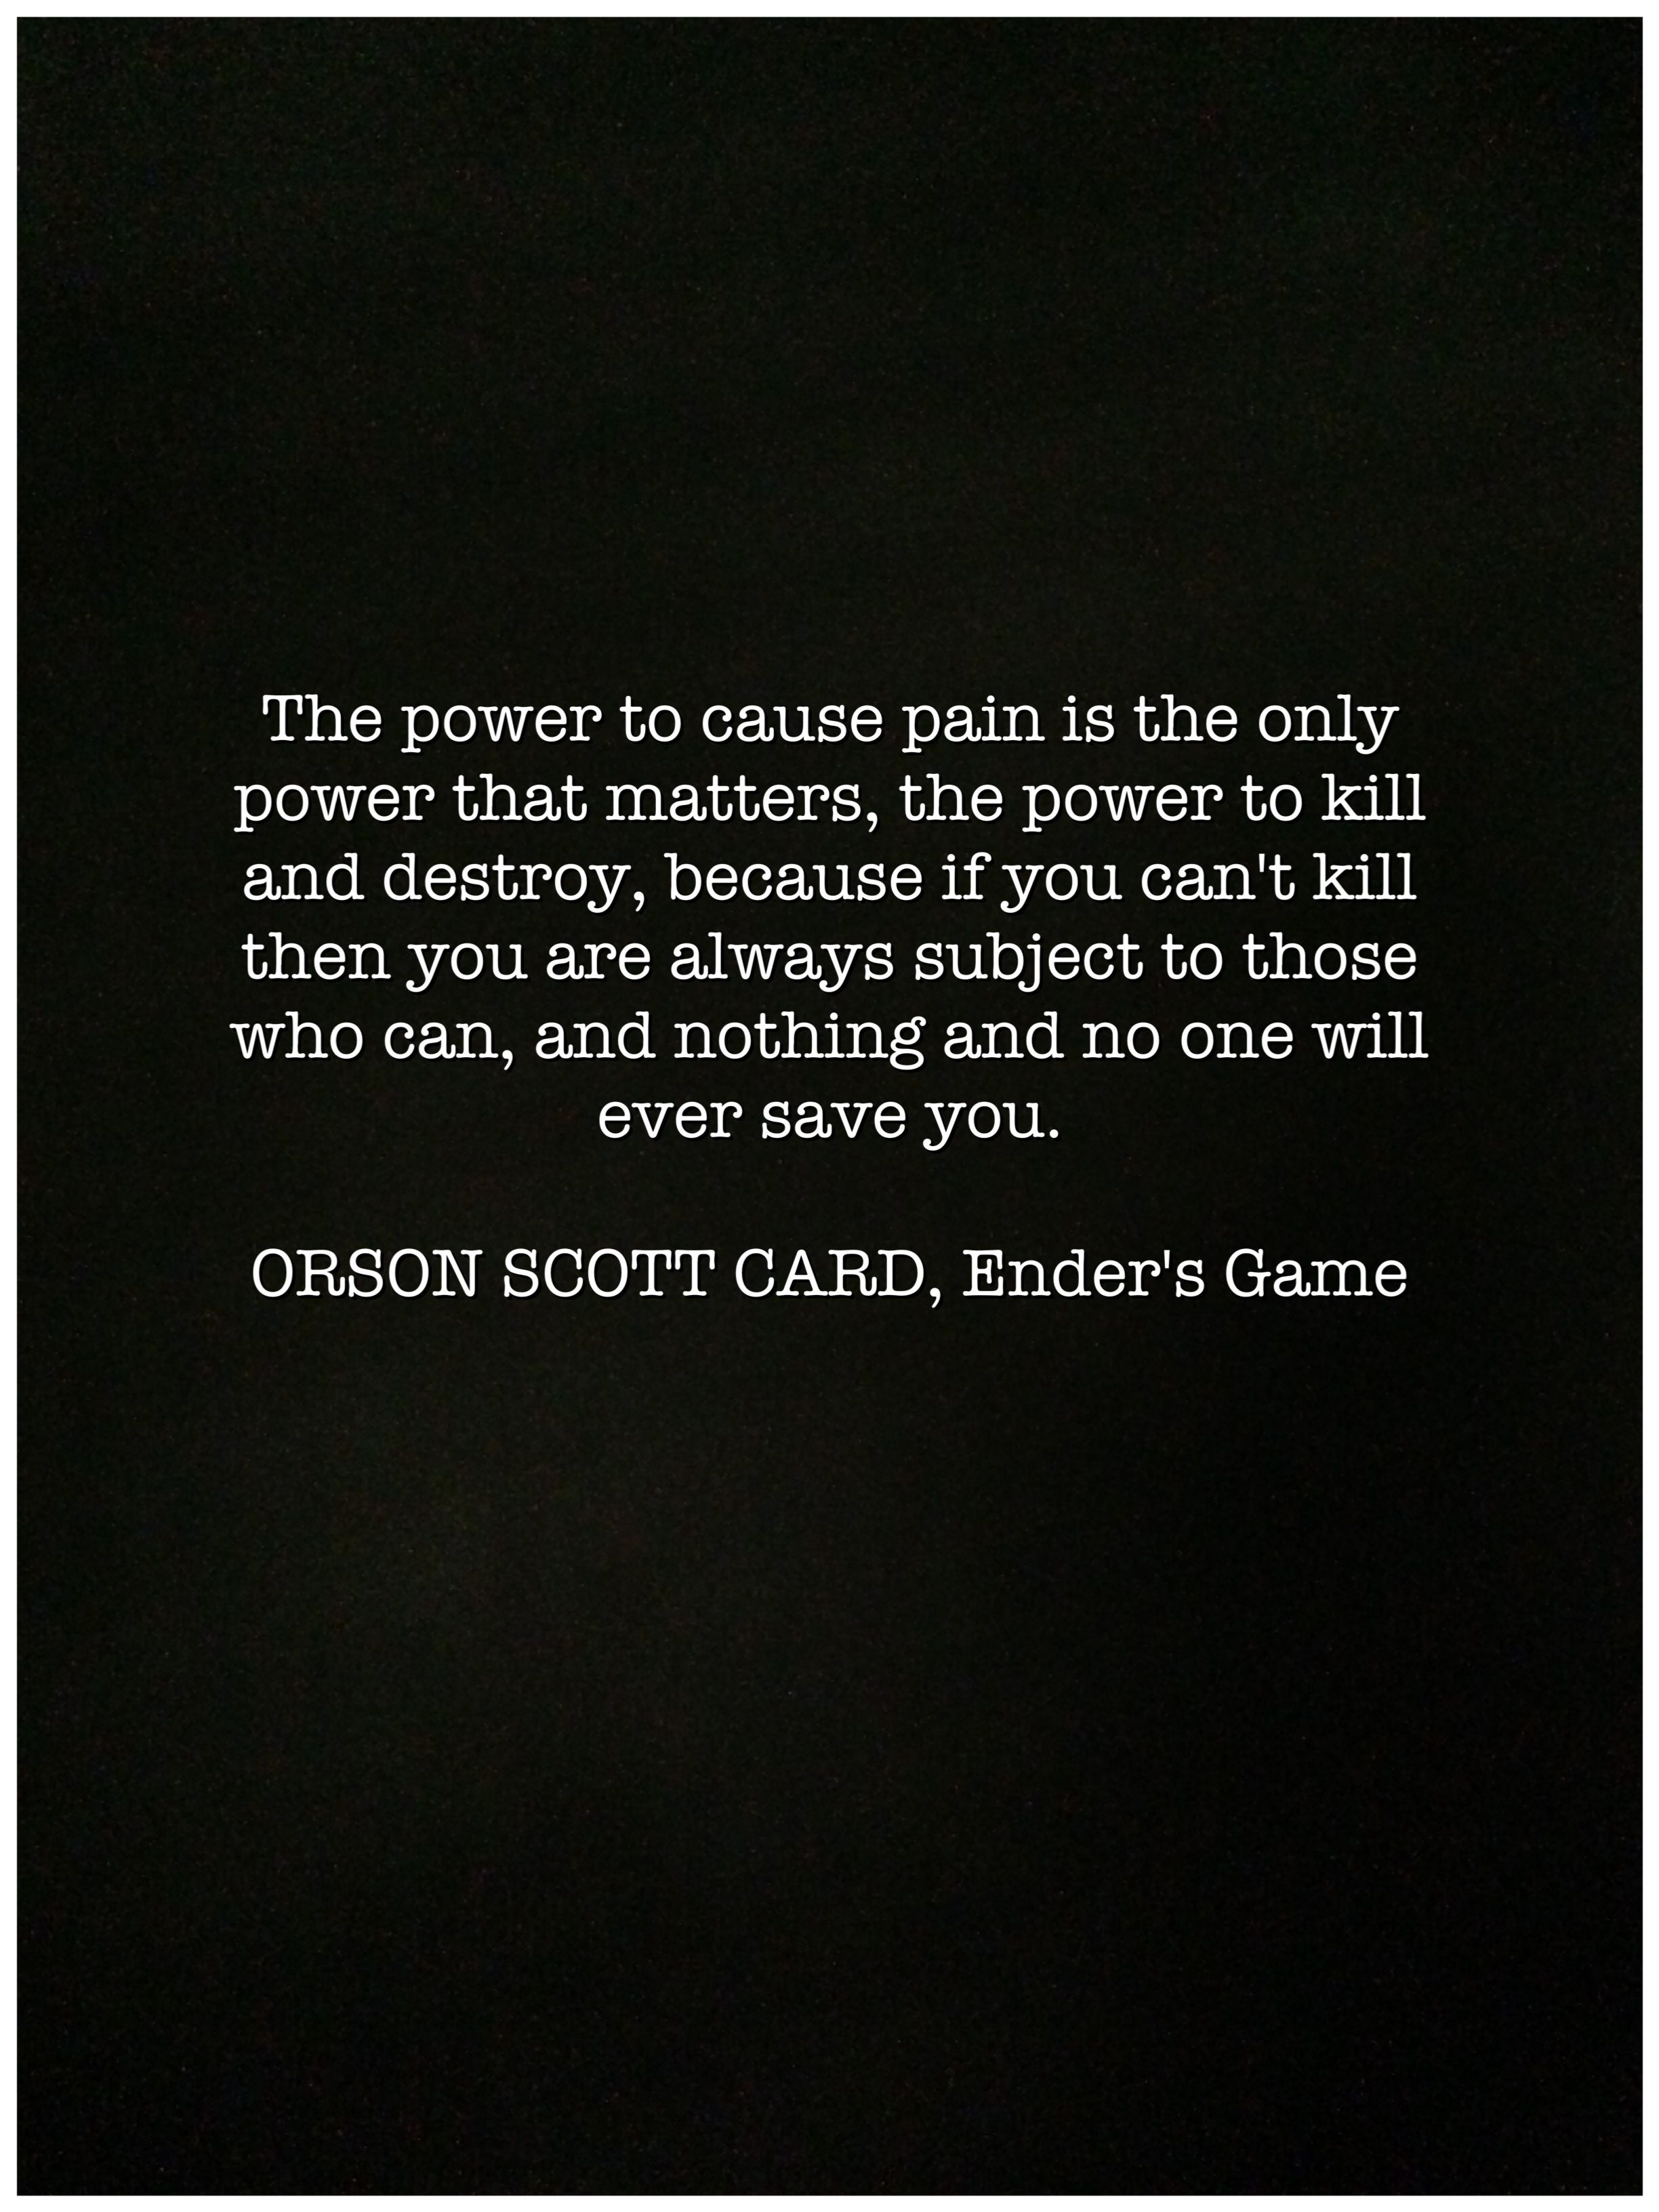 Pin By Alexandria Bennett On Conflicts Game Quotes Orson Scott Card Ender S Game